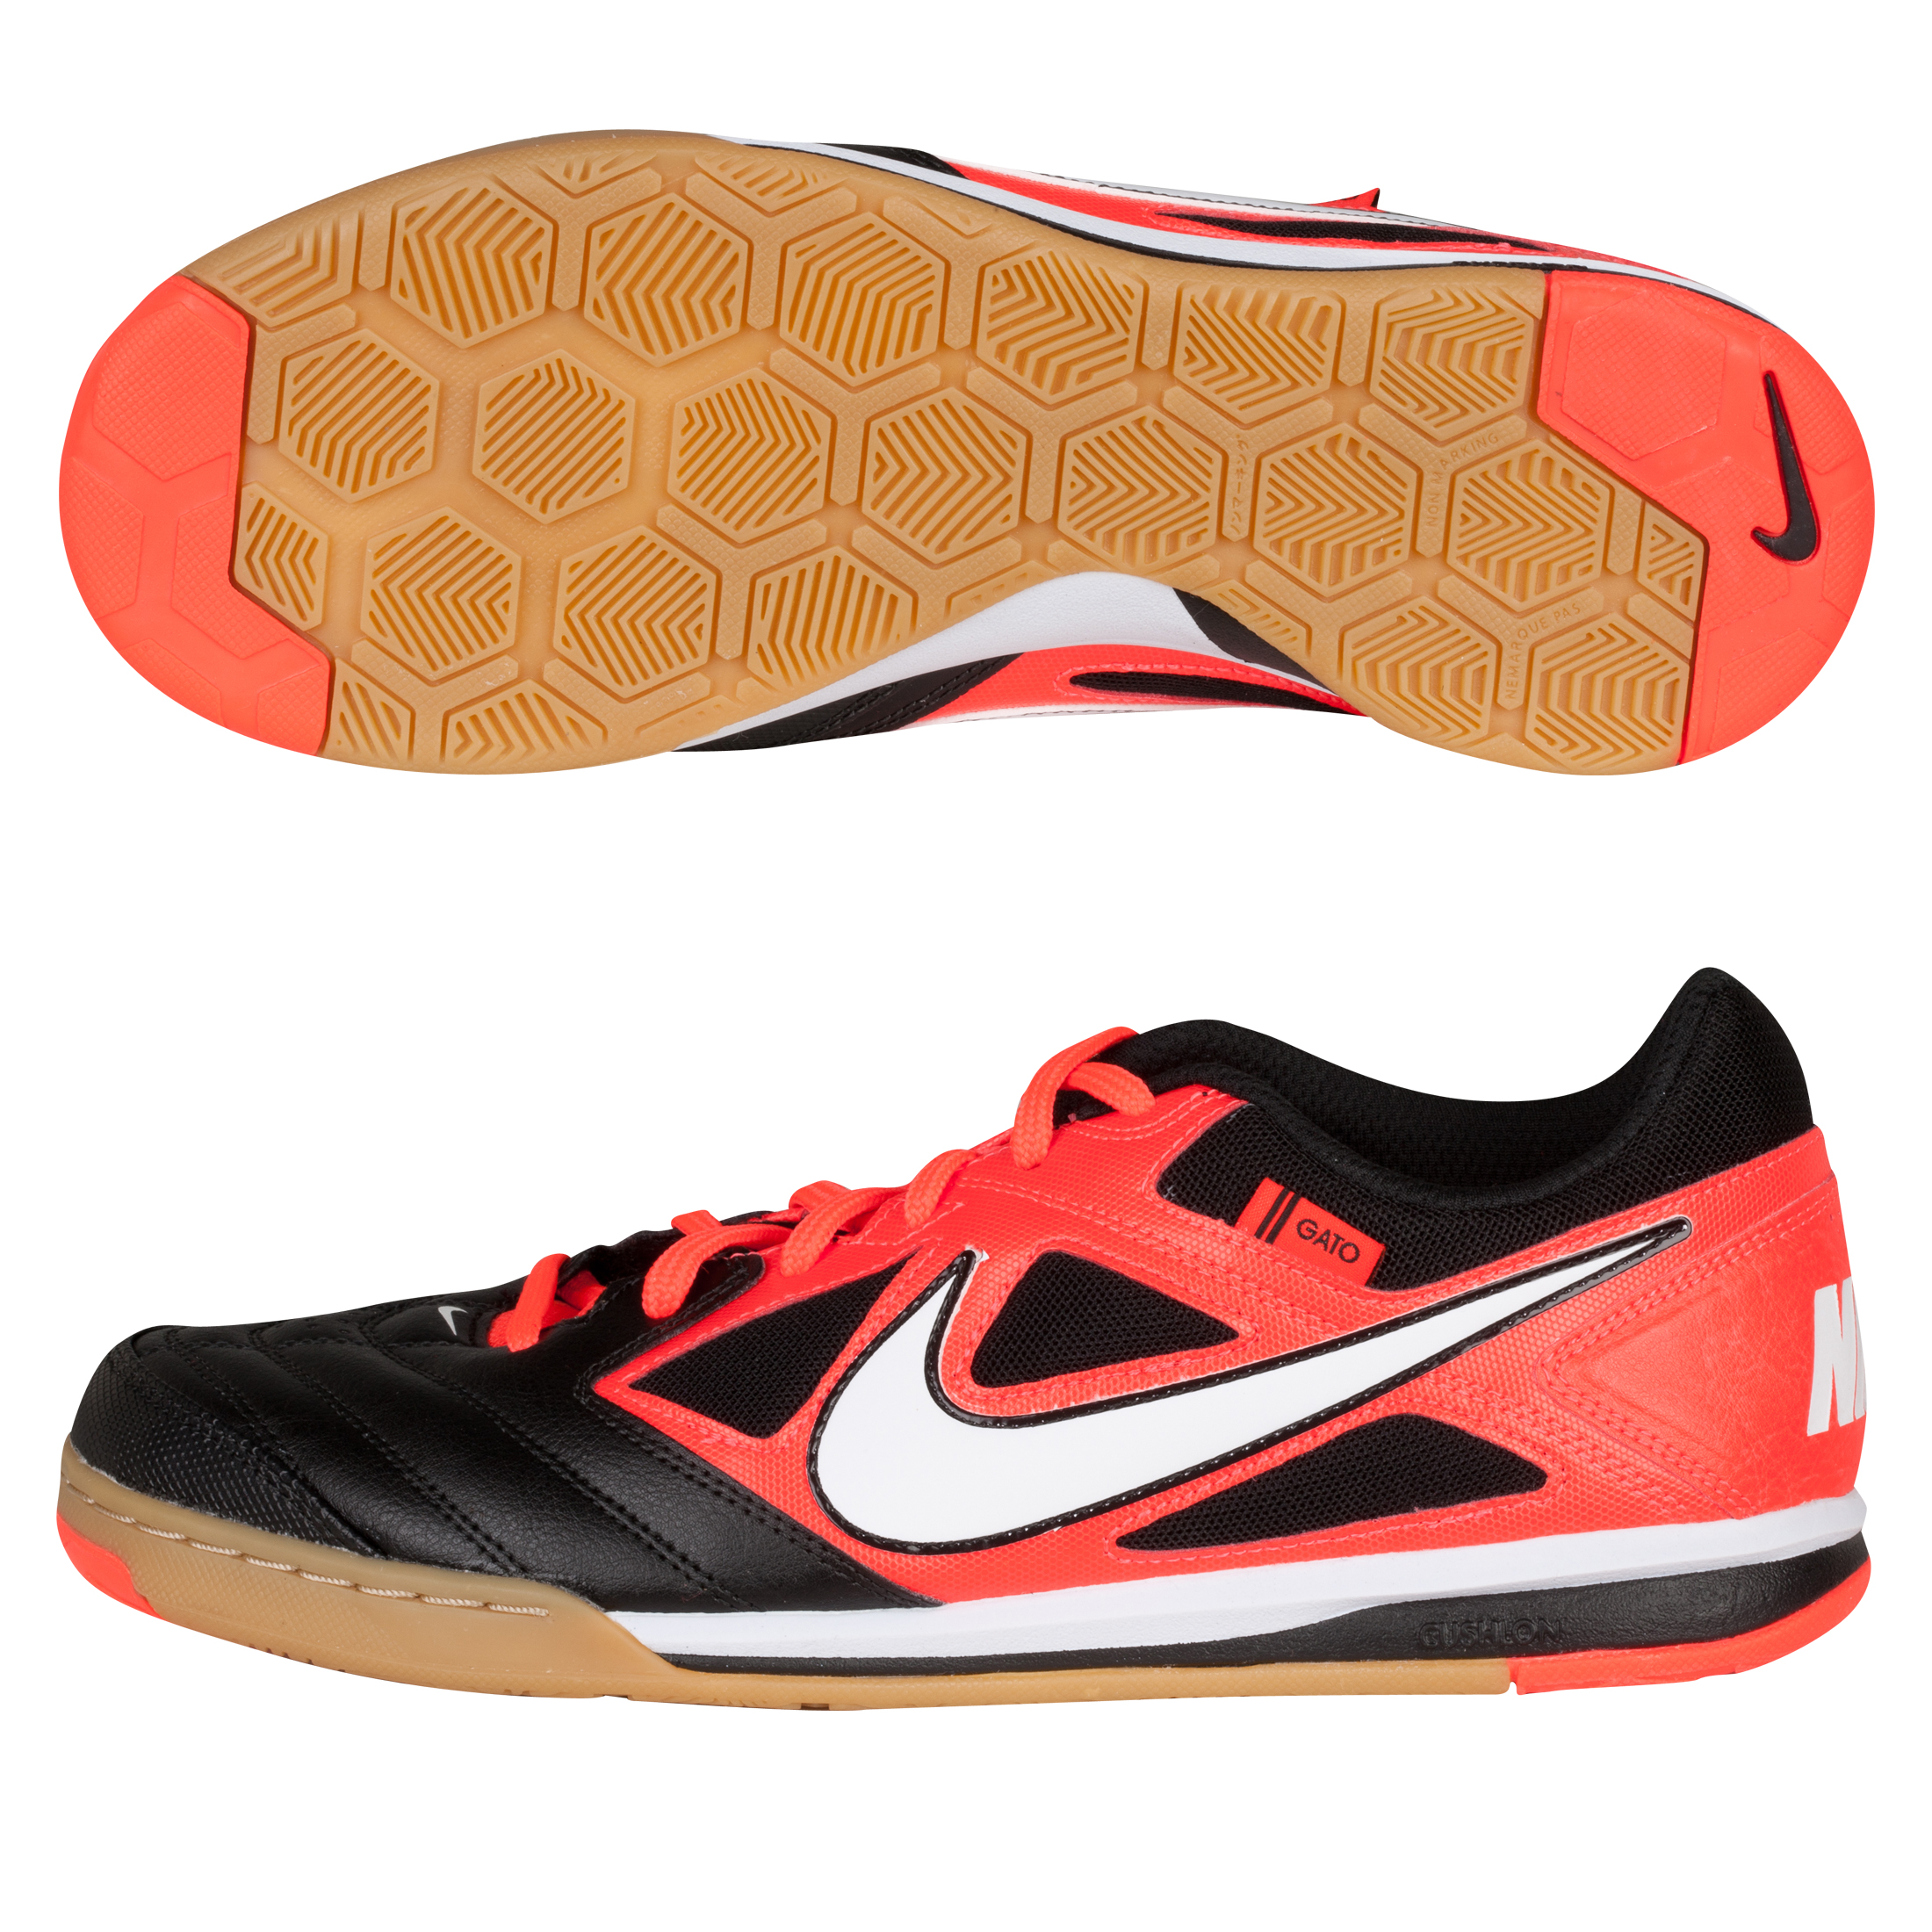 Nike5 Gato Trainers - Black/White/Bright Crimson/GM Light